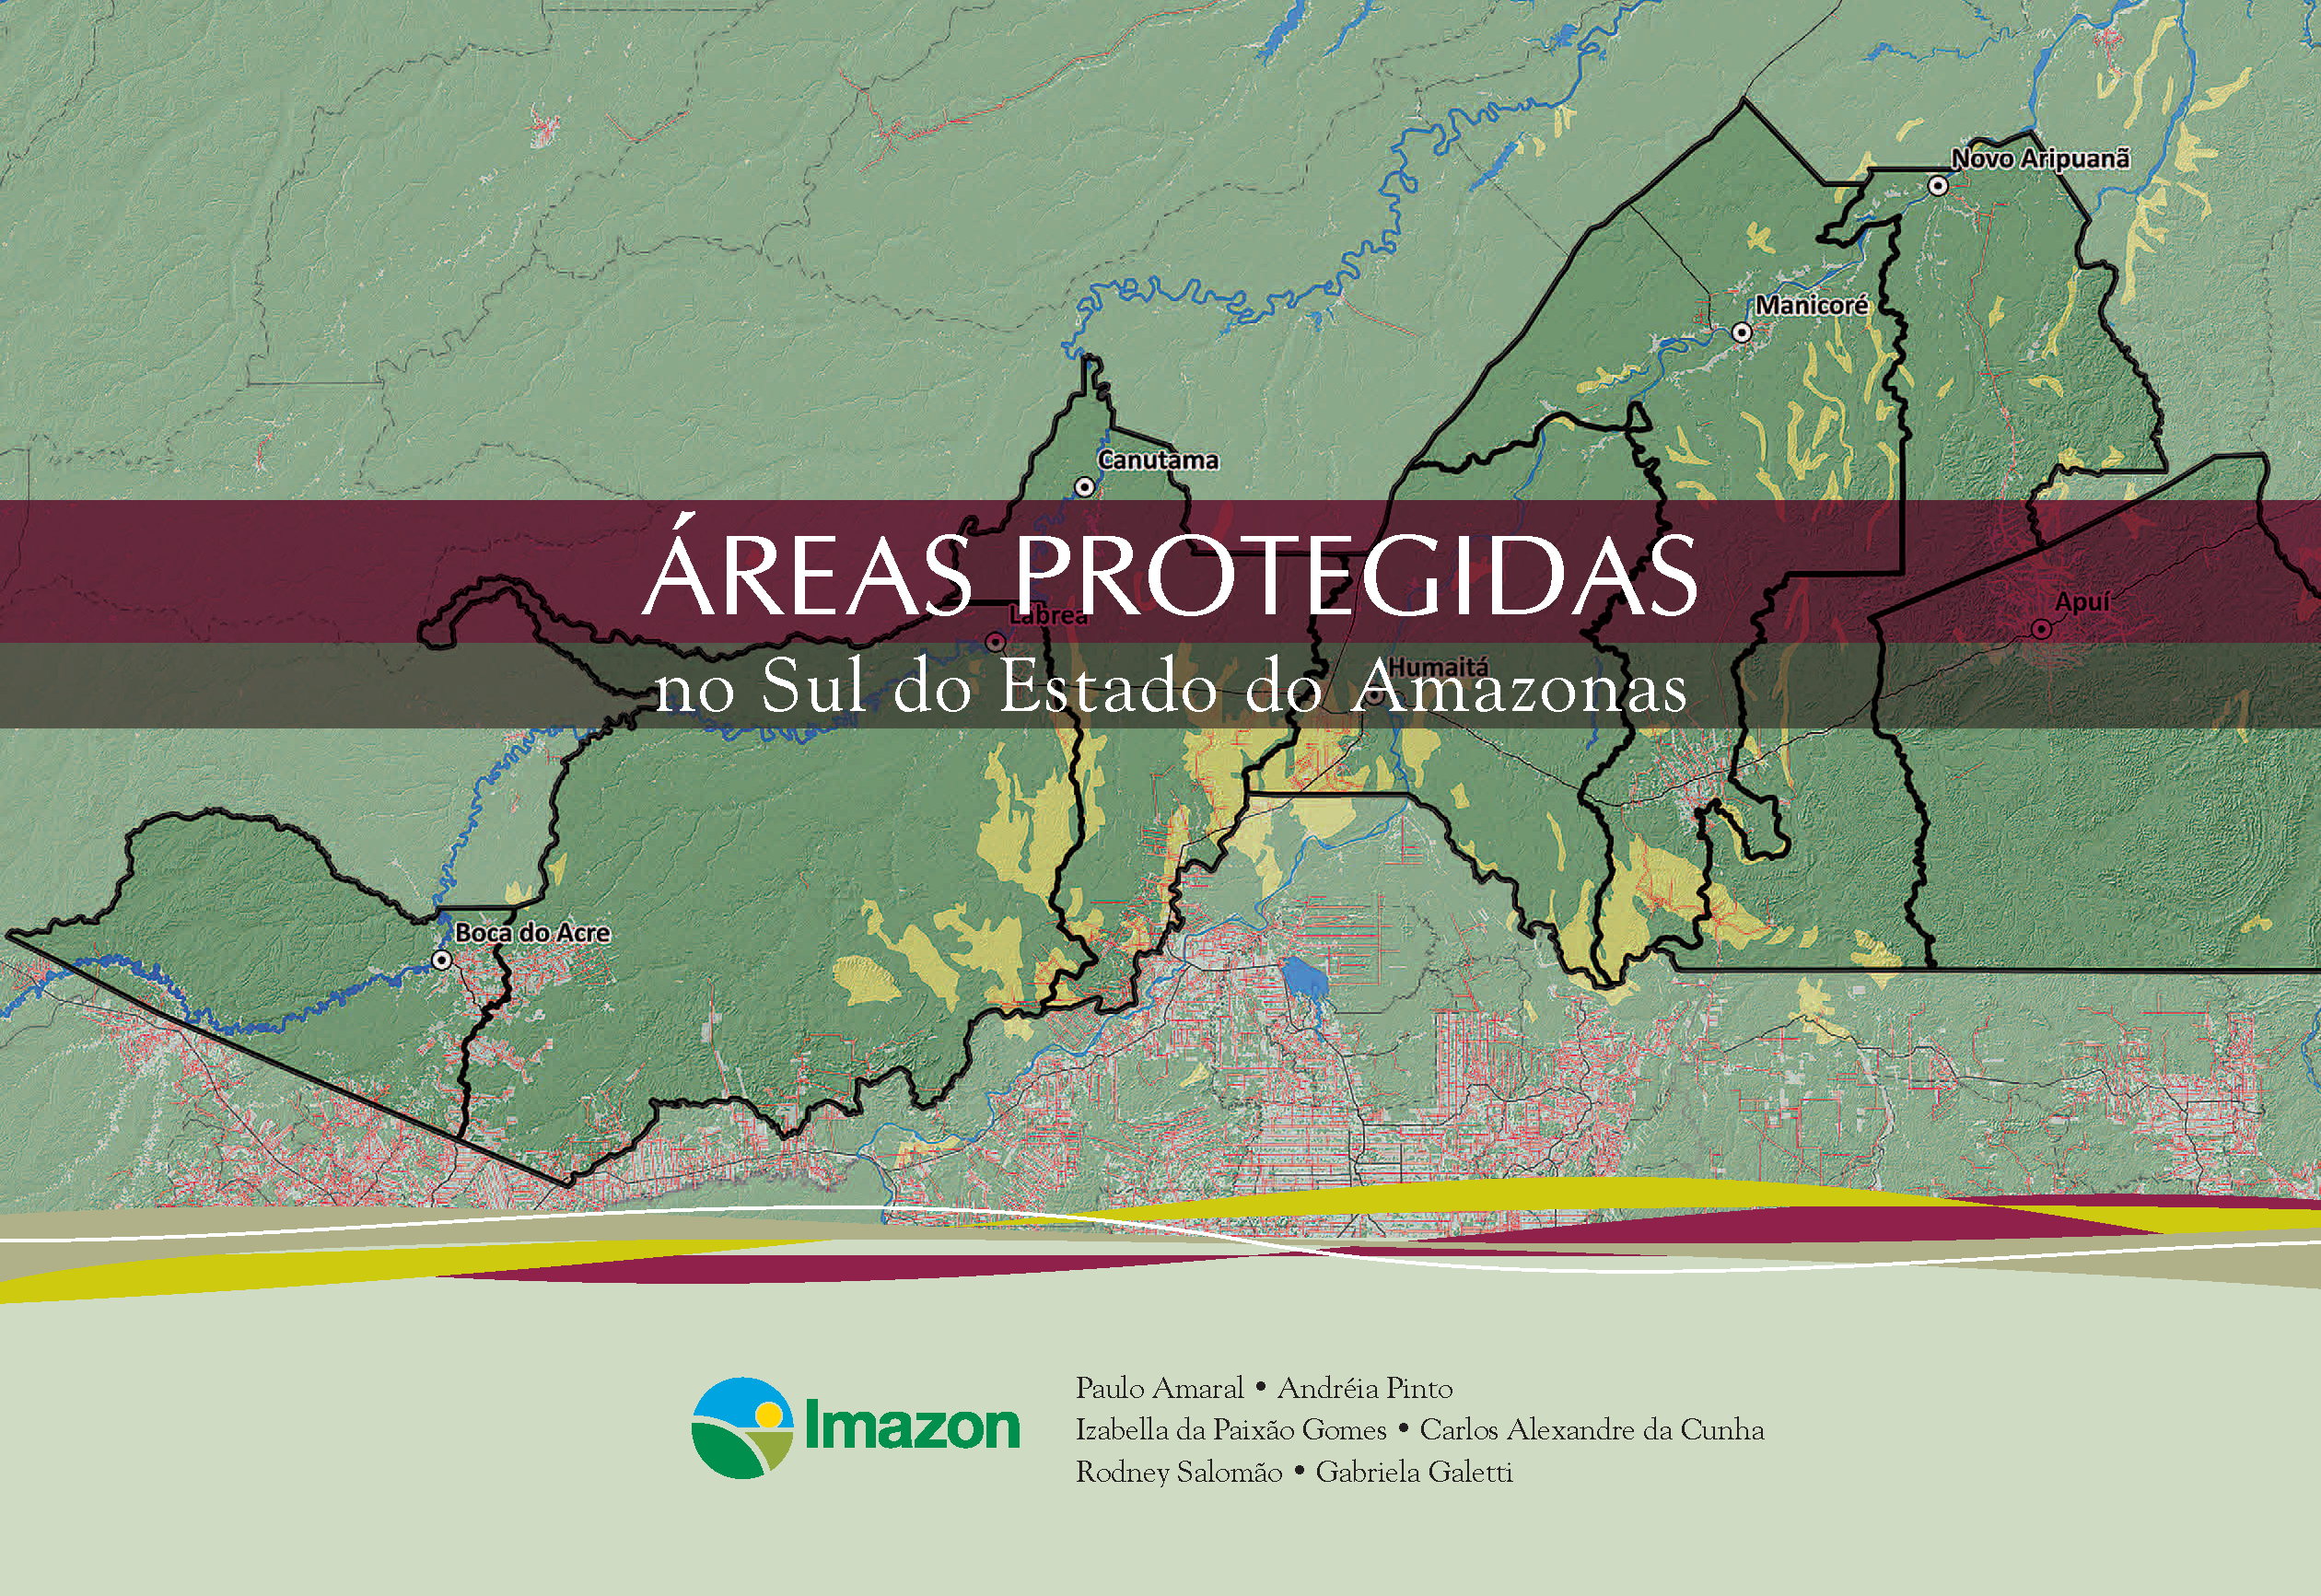 Capa da Áreas protegidas no sul do Estado do Amazonas